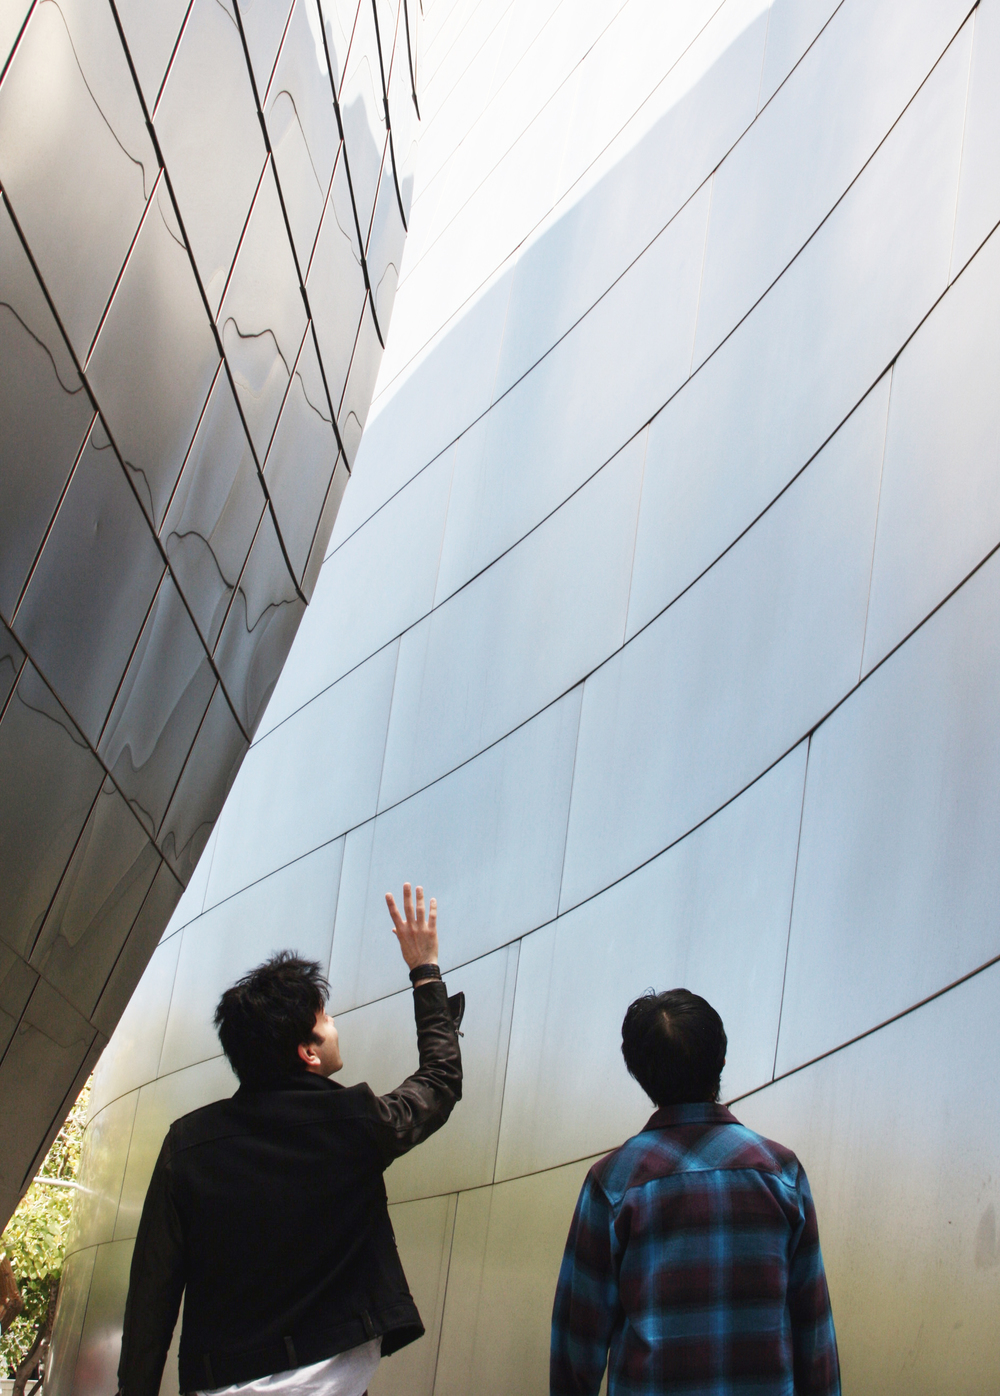 Iman Ansari with Edwin Chan at Walt Disney Music Hall